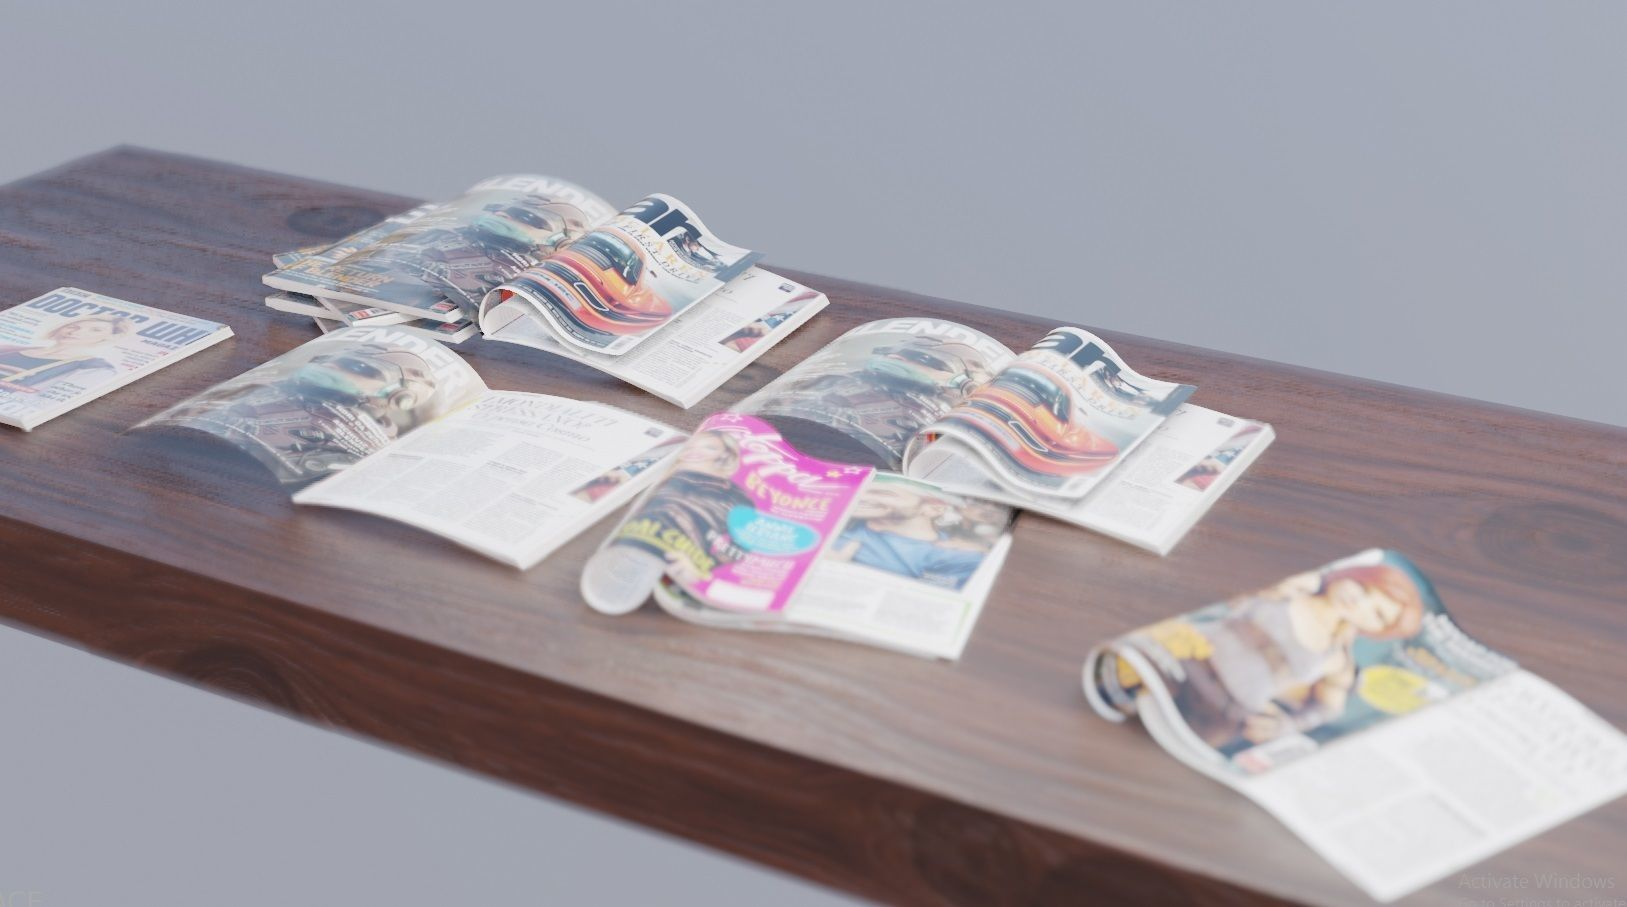 realistic collection of magazines